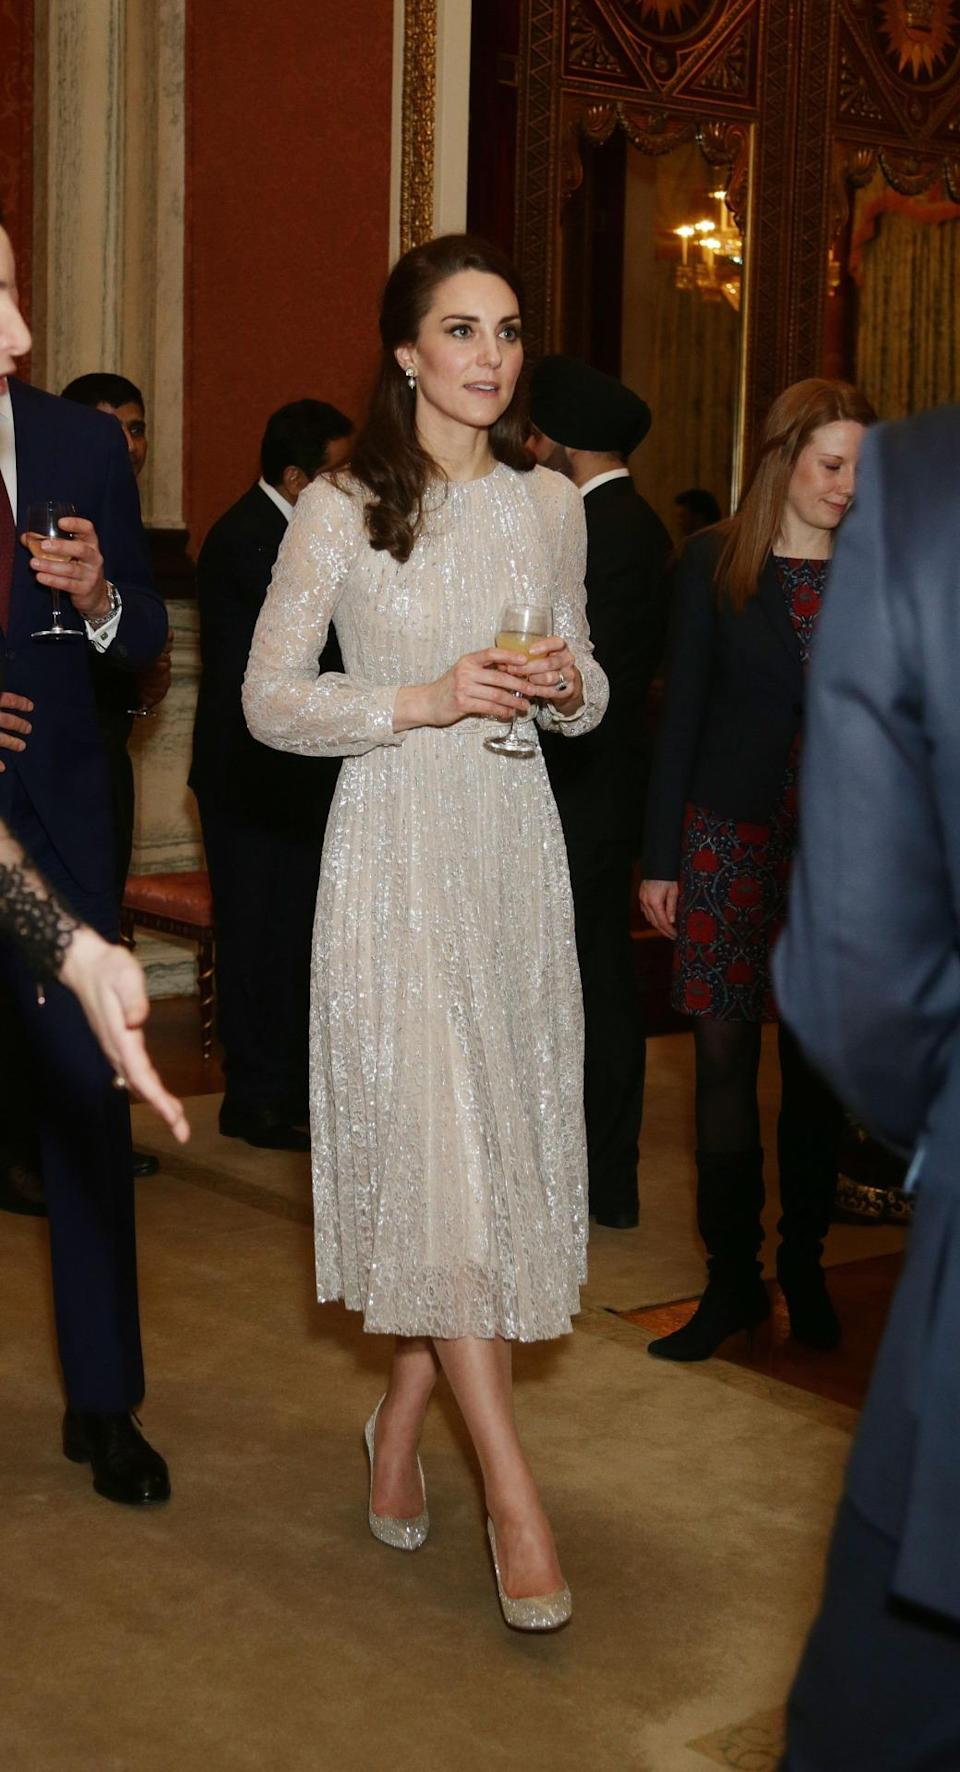 """<p>For a reception held at Buckingham Palace to celebrate the UK-India Year of Culture, Kate chose a look by her favourite British designer, Erdem. The cocktail dress was made from a metallic lace and featured semi-sheer sleeves as well as a pleated skirt. It sold out straight after the Duchess wore it but luckily, her glittering Oscar de la Renta heels can <a rel=""""nofollow noopener"""" href=""""http://www.oscardelarenta.com/new-arrivals/platinum-lame-cabrina-pumps"""" target=""""_blank"""" data-ylk=""""slk:still be yours"""" class=""""link rapid-noclick-resp"""">still be yours</a>. </p><p><i>[Photo: PA]</i> </p>"""